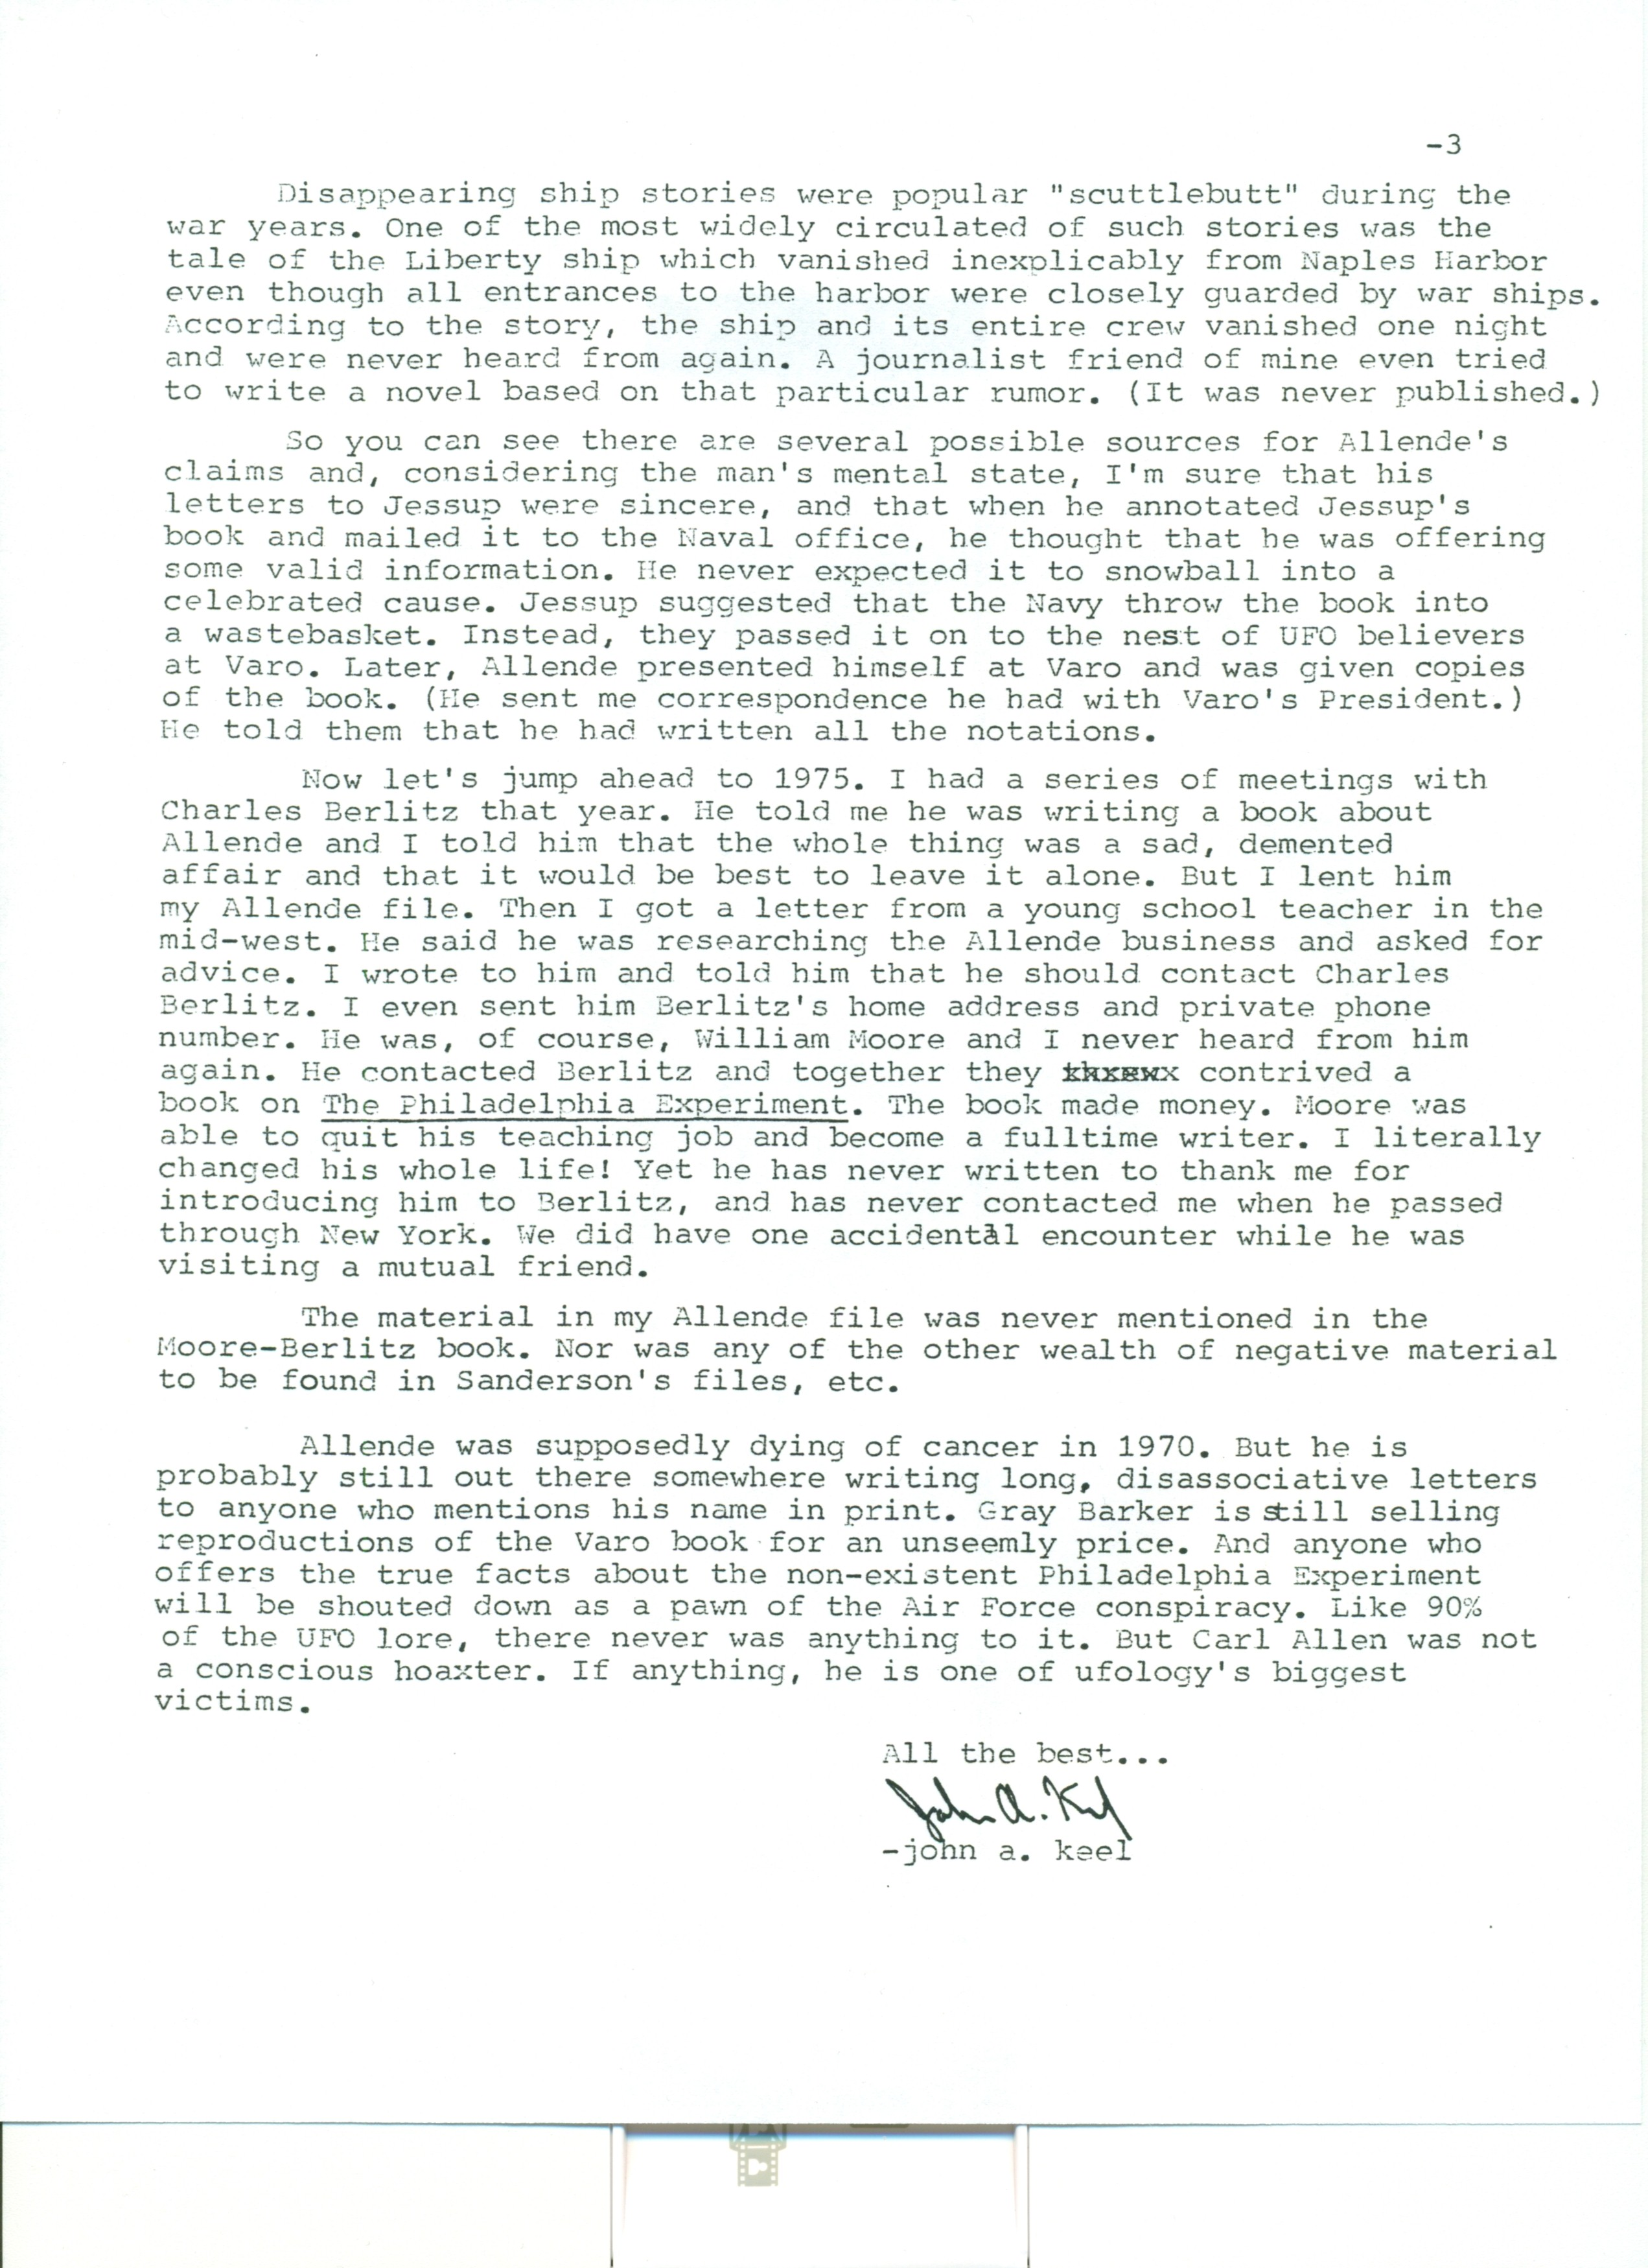 August 10, 1983 ~ Unsolicited Confession From John A. Keel about The Philadelphia Experiment of 1943